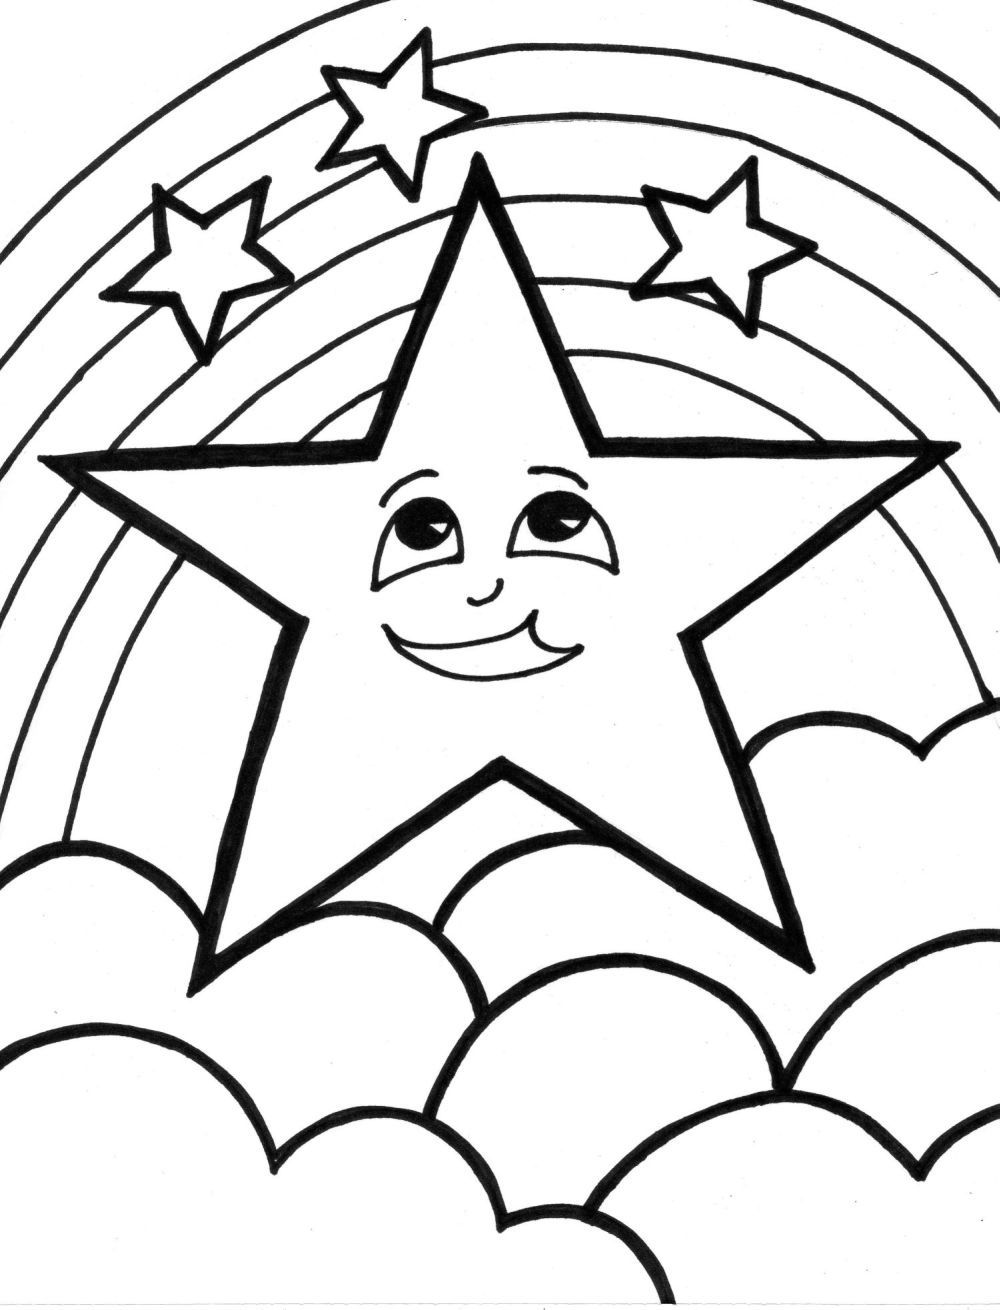 Coloring Pages Bedtime Coloring Pages bedtime coloring pages az january 2014 a peek in my life